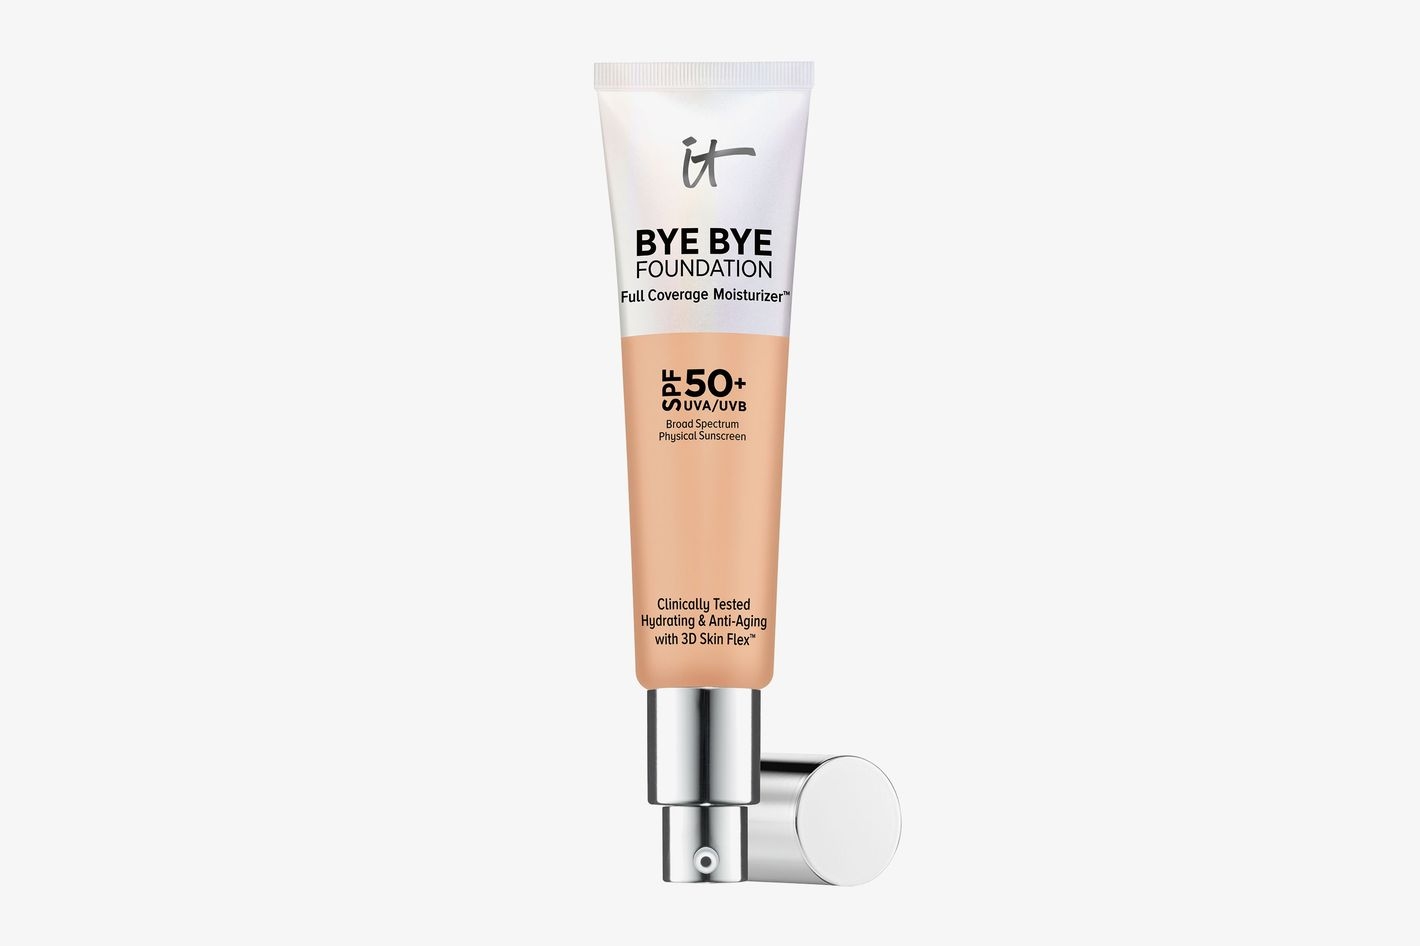 Bye Bye Foundation Full Coverage Moisturizer with SPF 50+ Neutral Medium